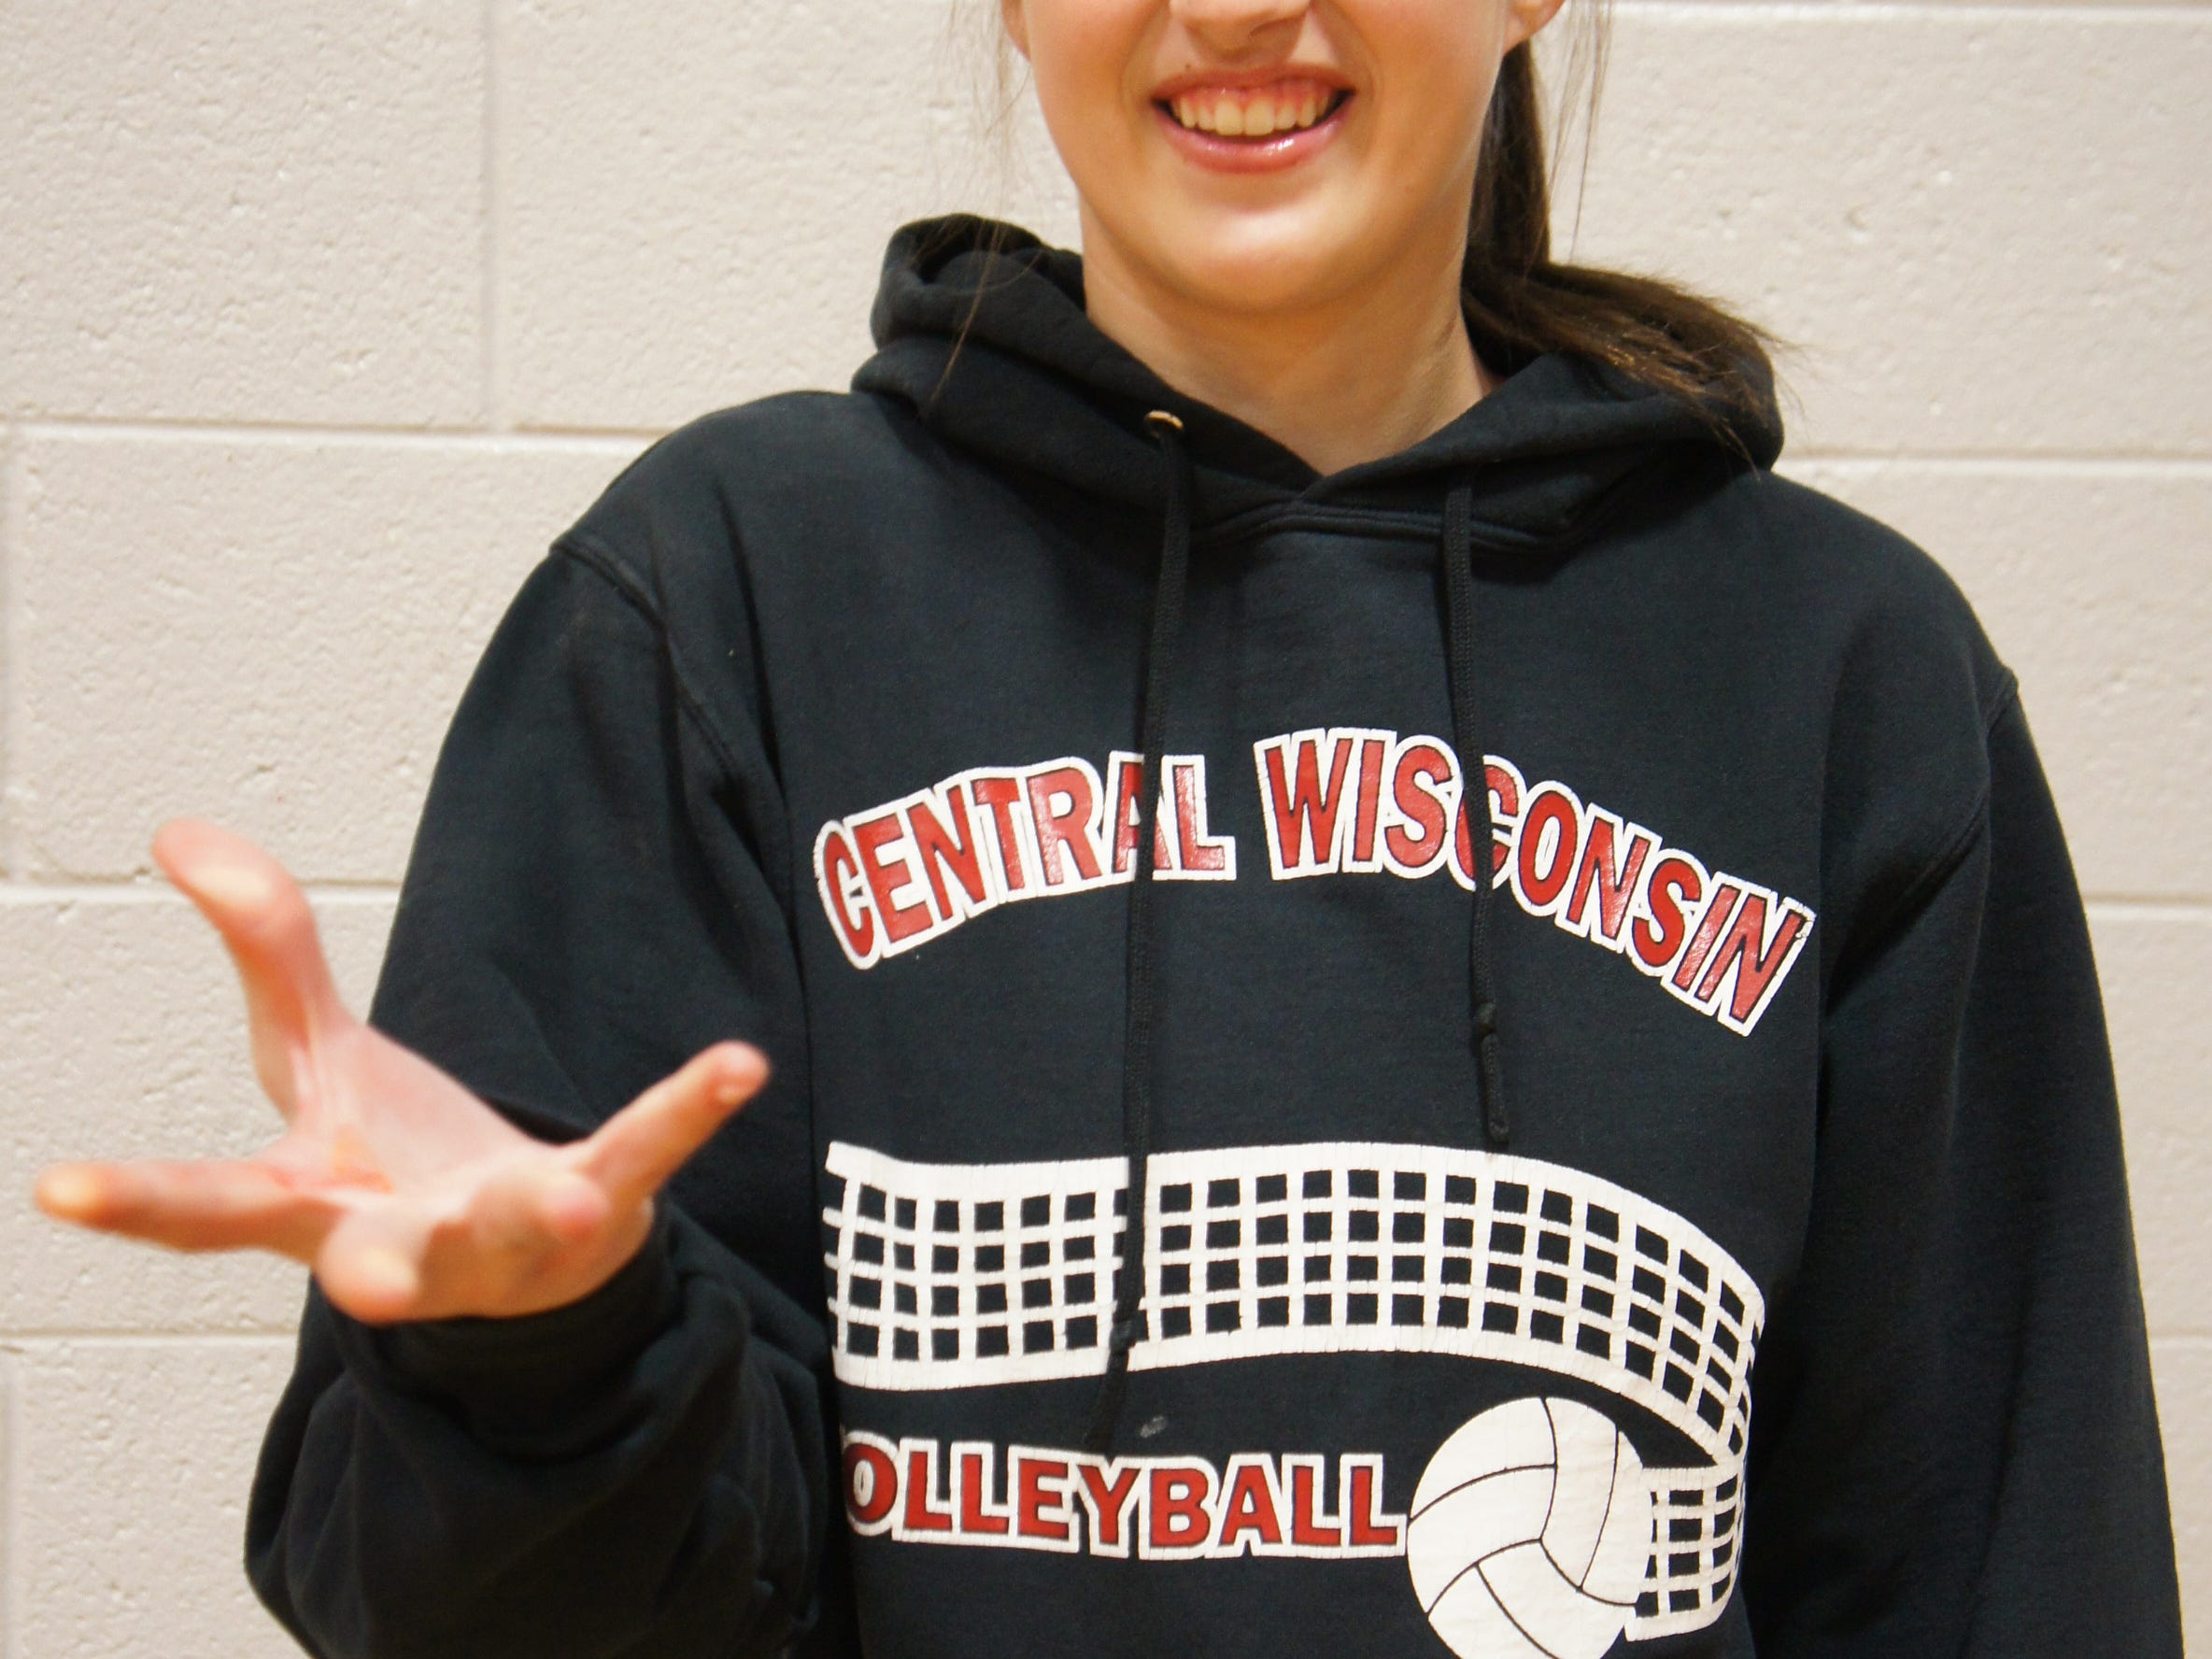 Spencer senior Marisa Johnson has been a two-sport standout for the Rockets, excelling in volleyball and softball.